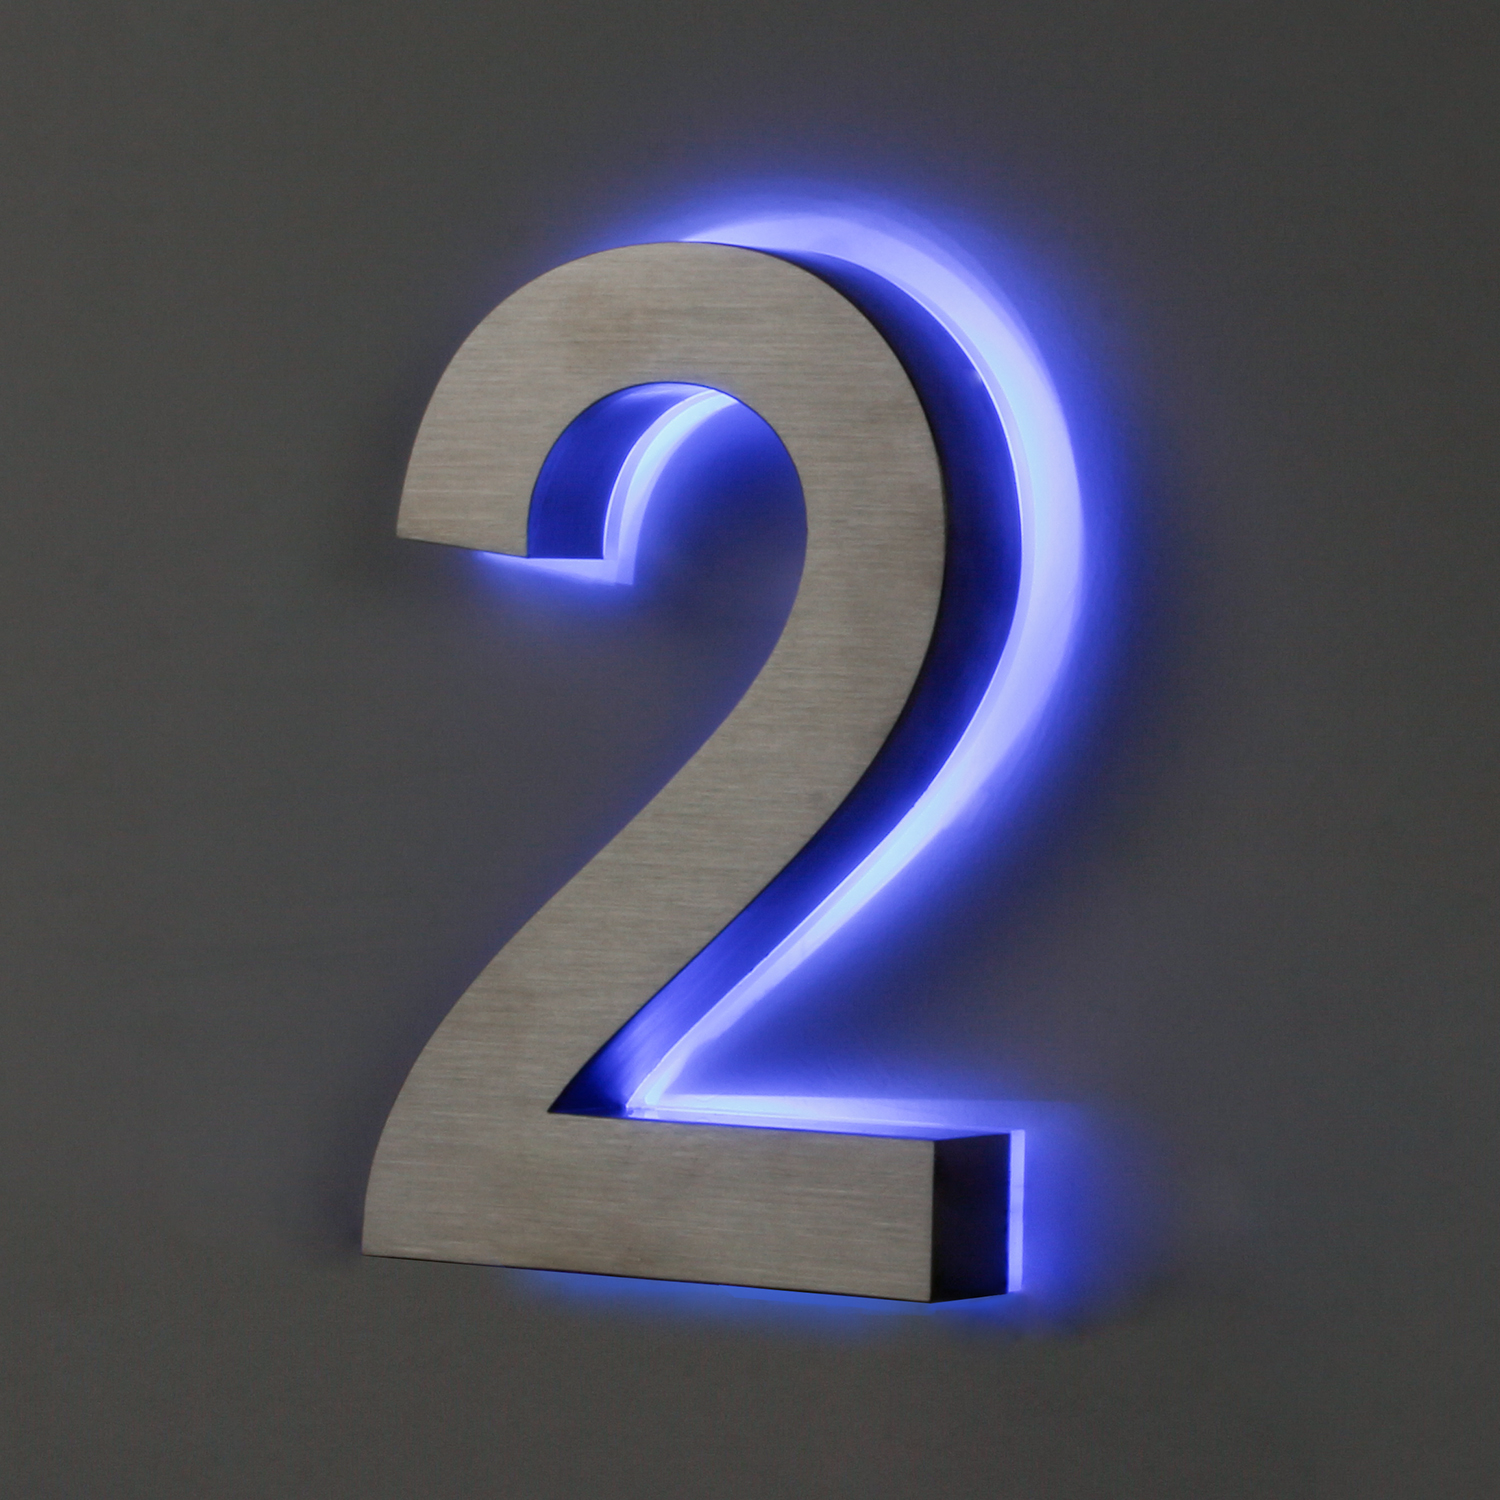 Outdoor led house number sign